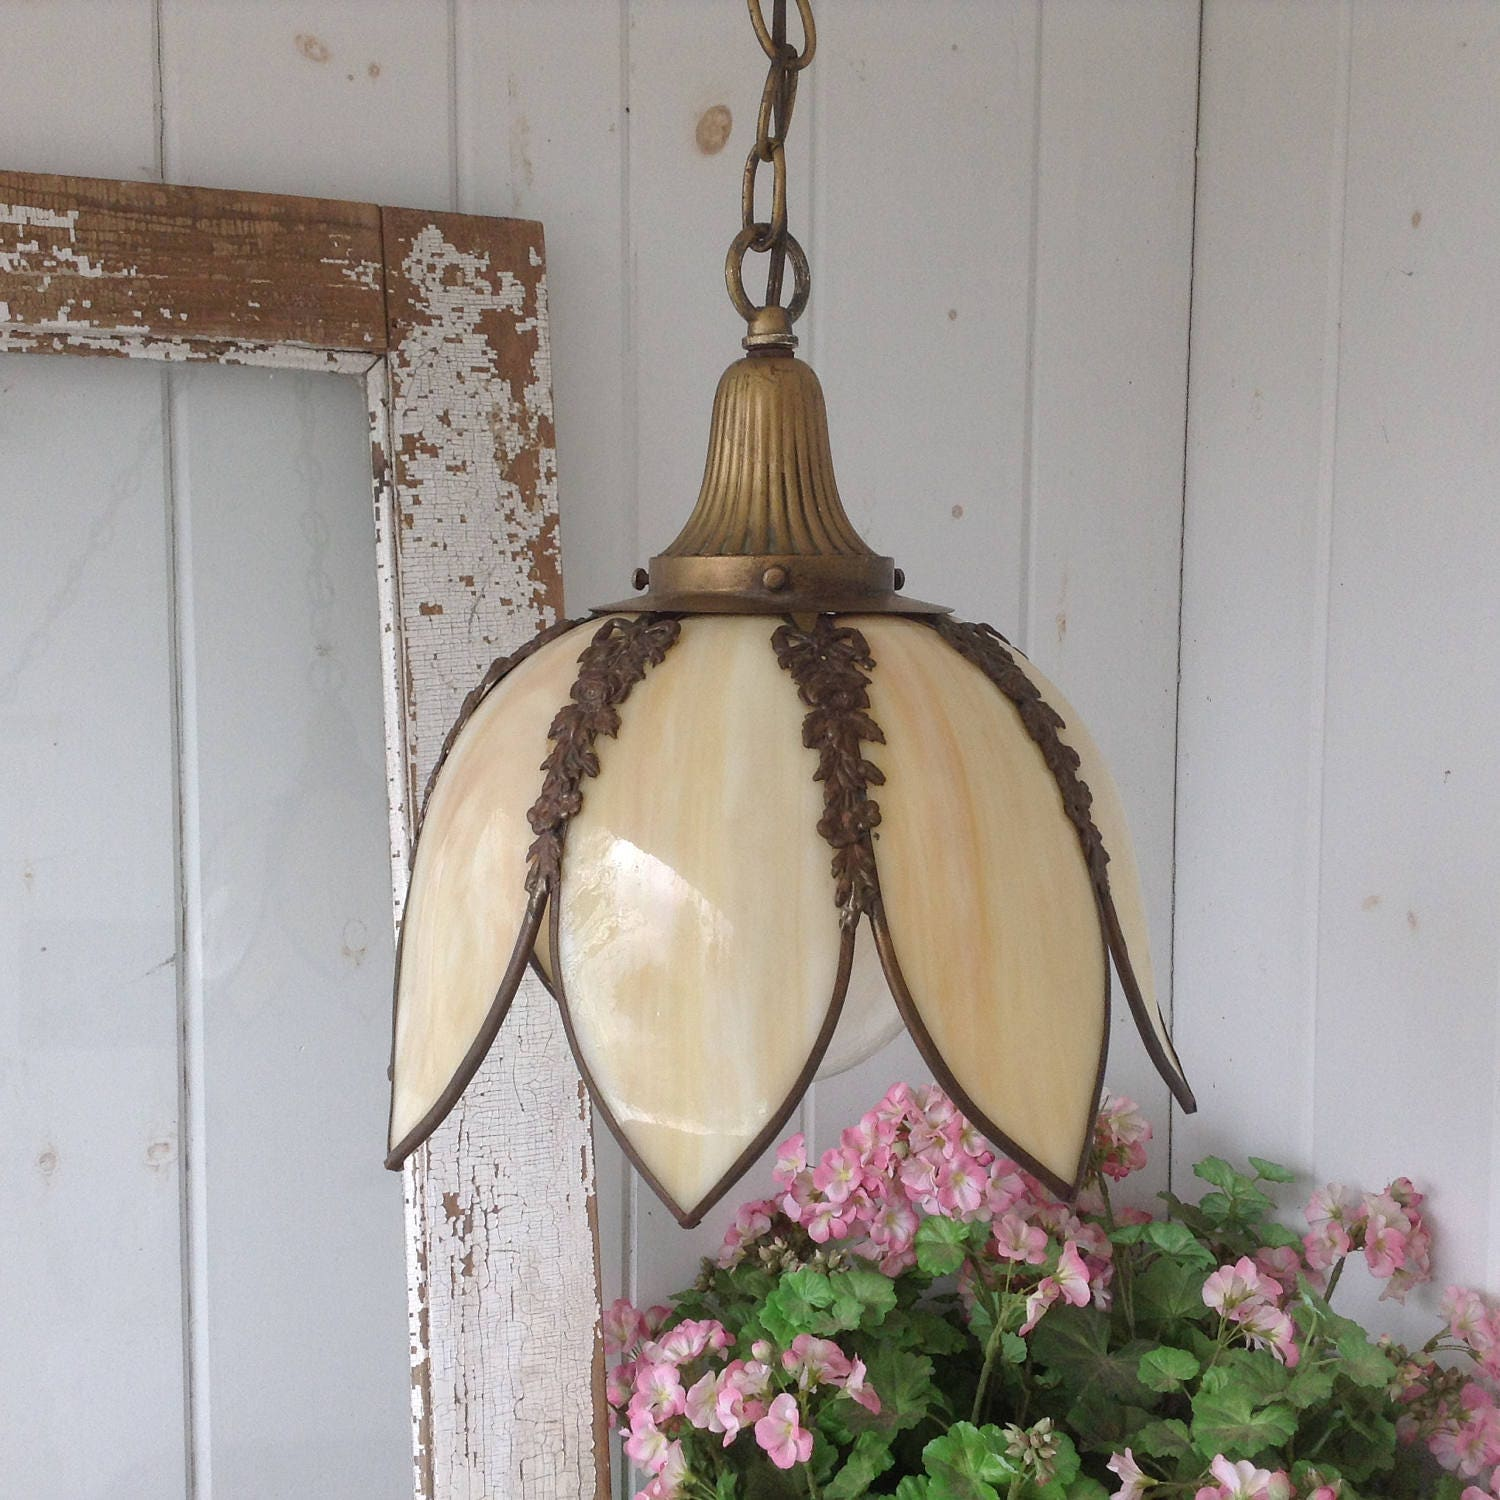 Swag lamp – Small Vintage Chandelier